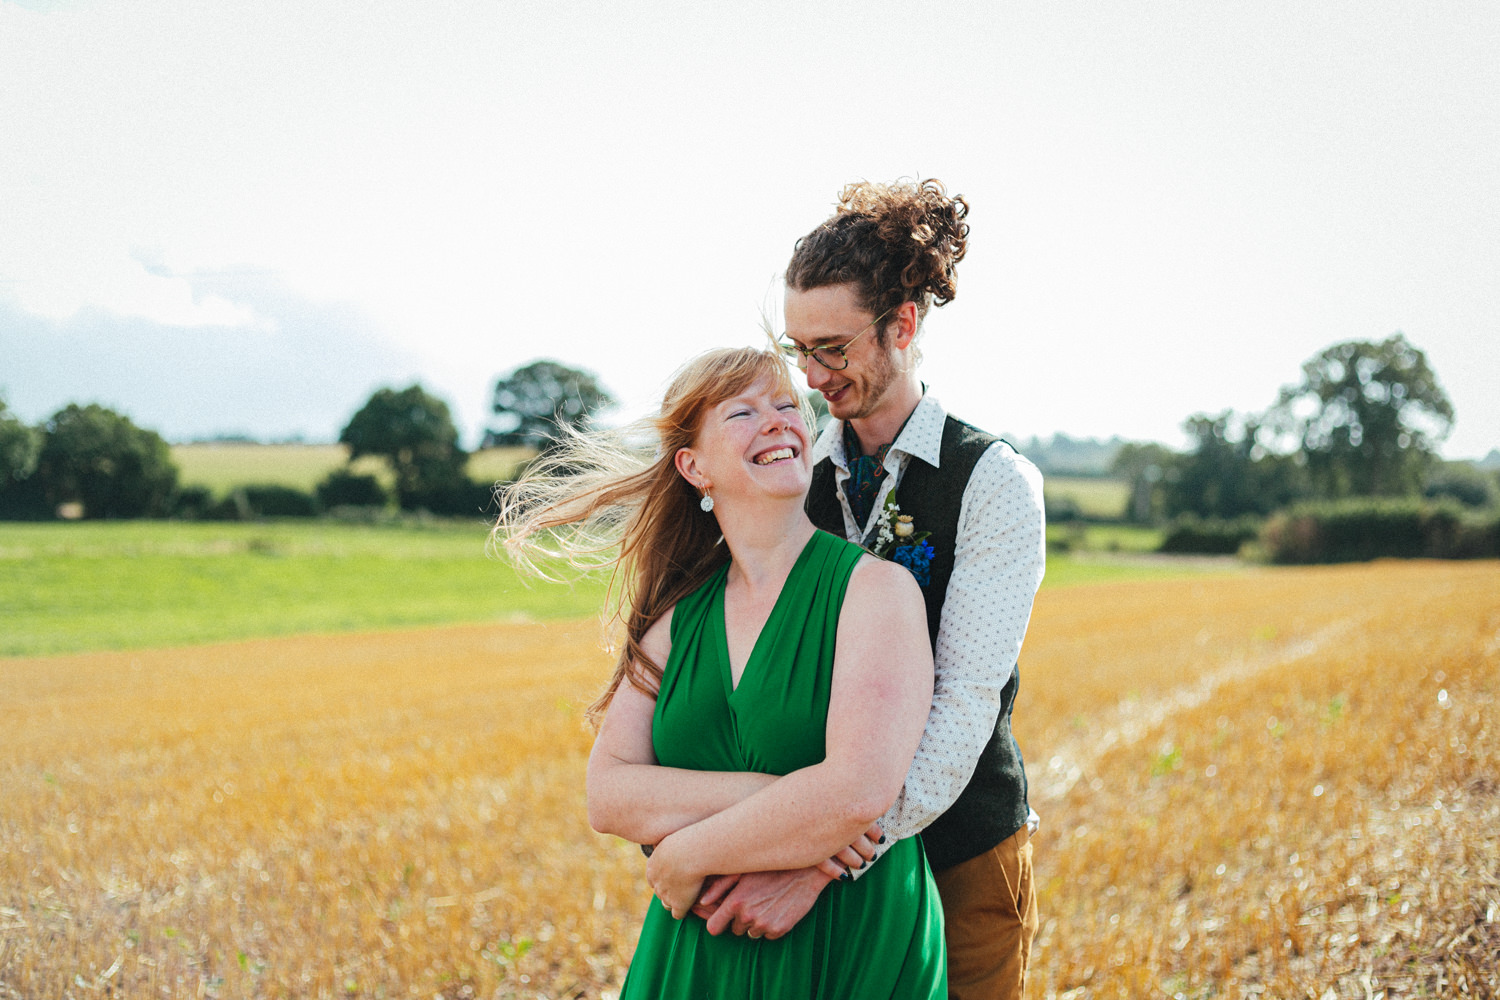 outdoor wedding photography, farm wedding, devon wedding, devon wedding photographer, alternative wedding, eco friendly wedding, green wedding